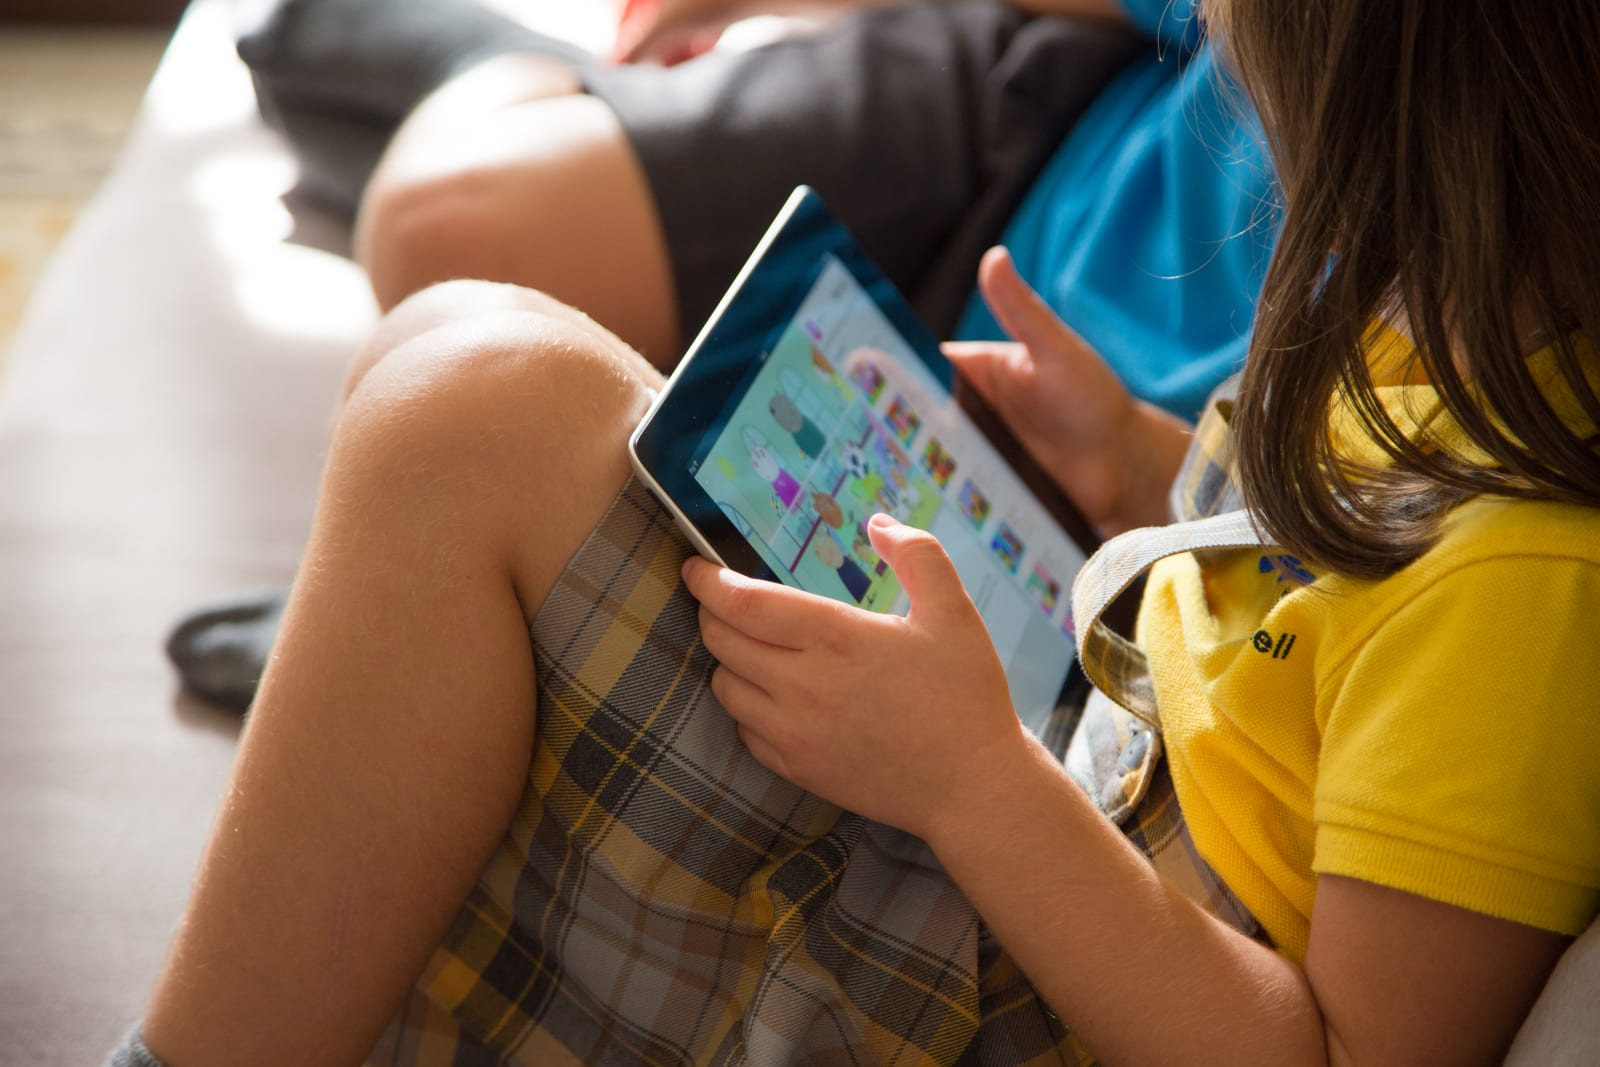 Senator presses FTC to require stricter child protections from YouTube